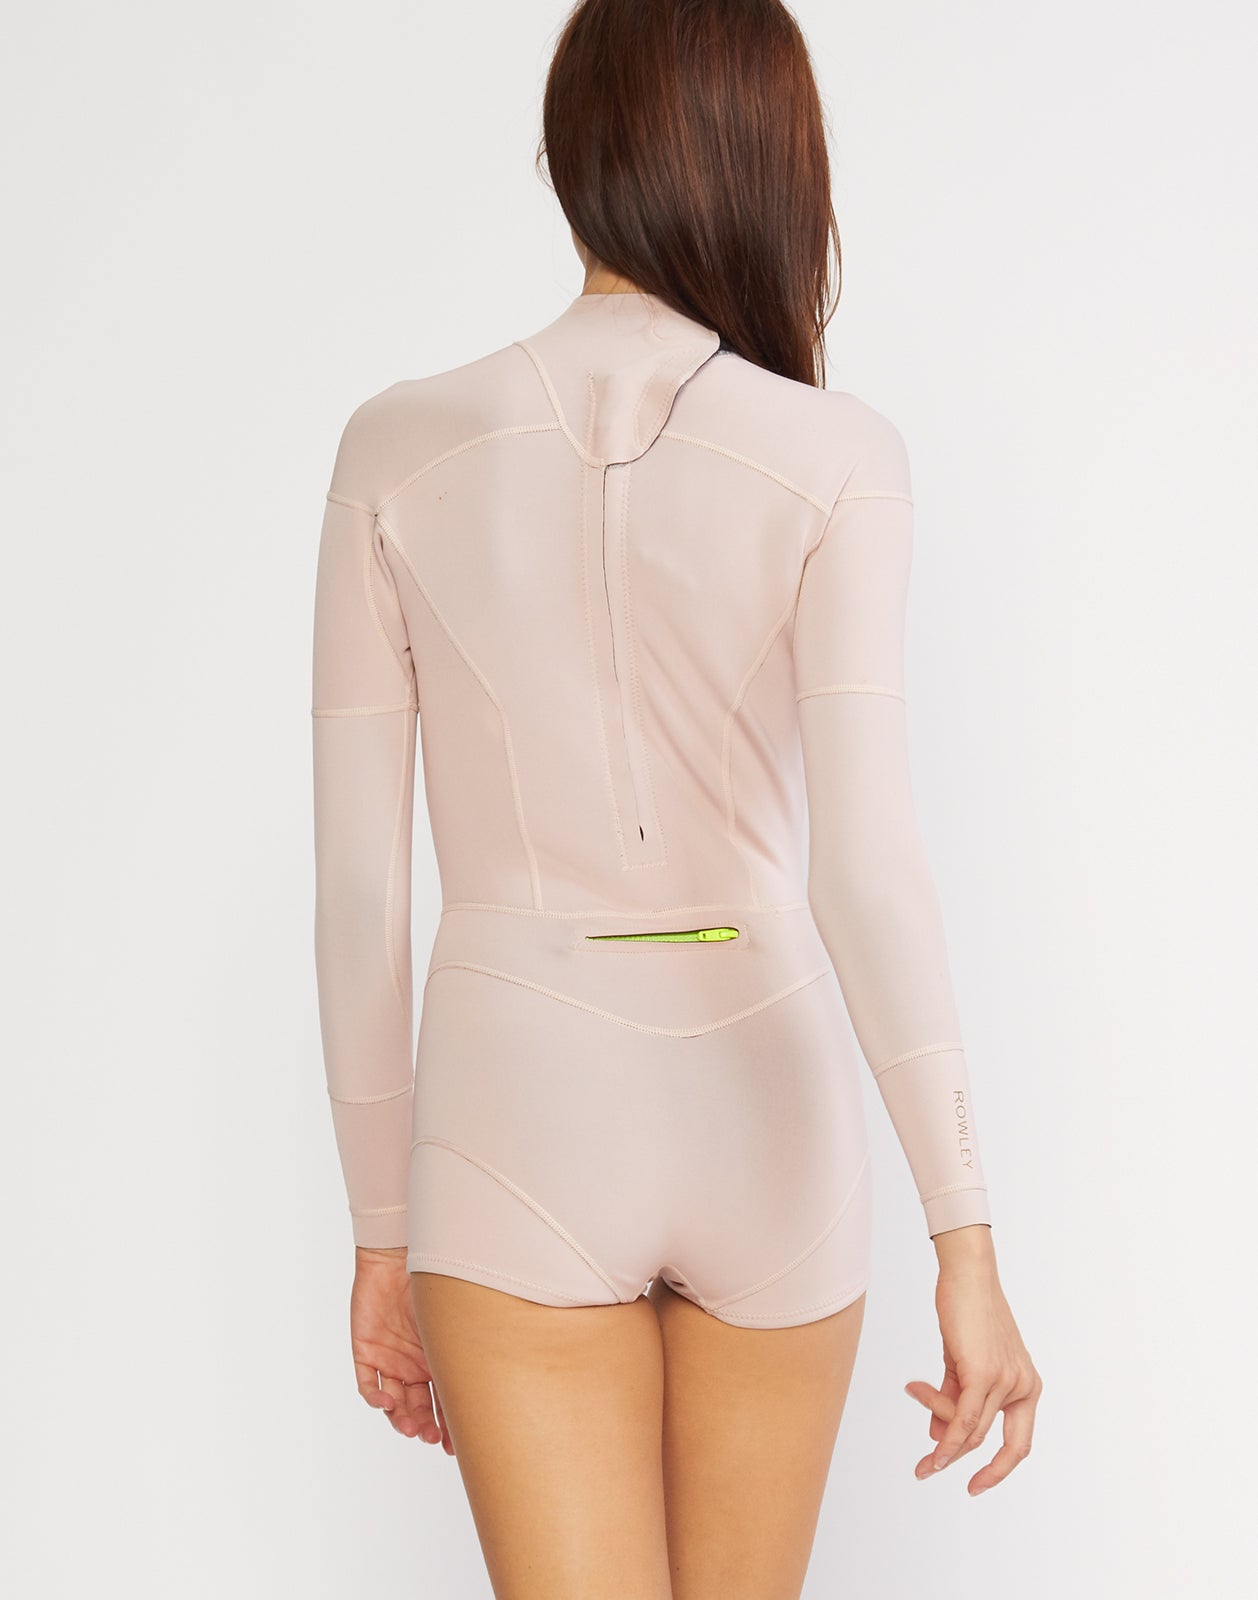 Back view of the solid neoprene wetsuit in rosebud pink.